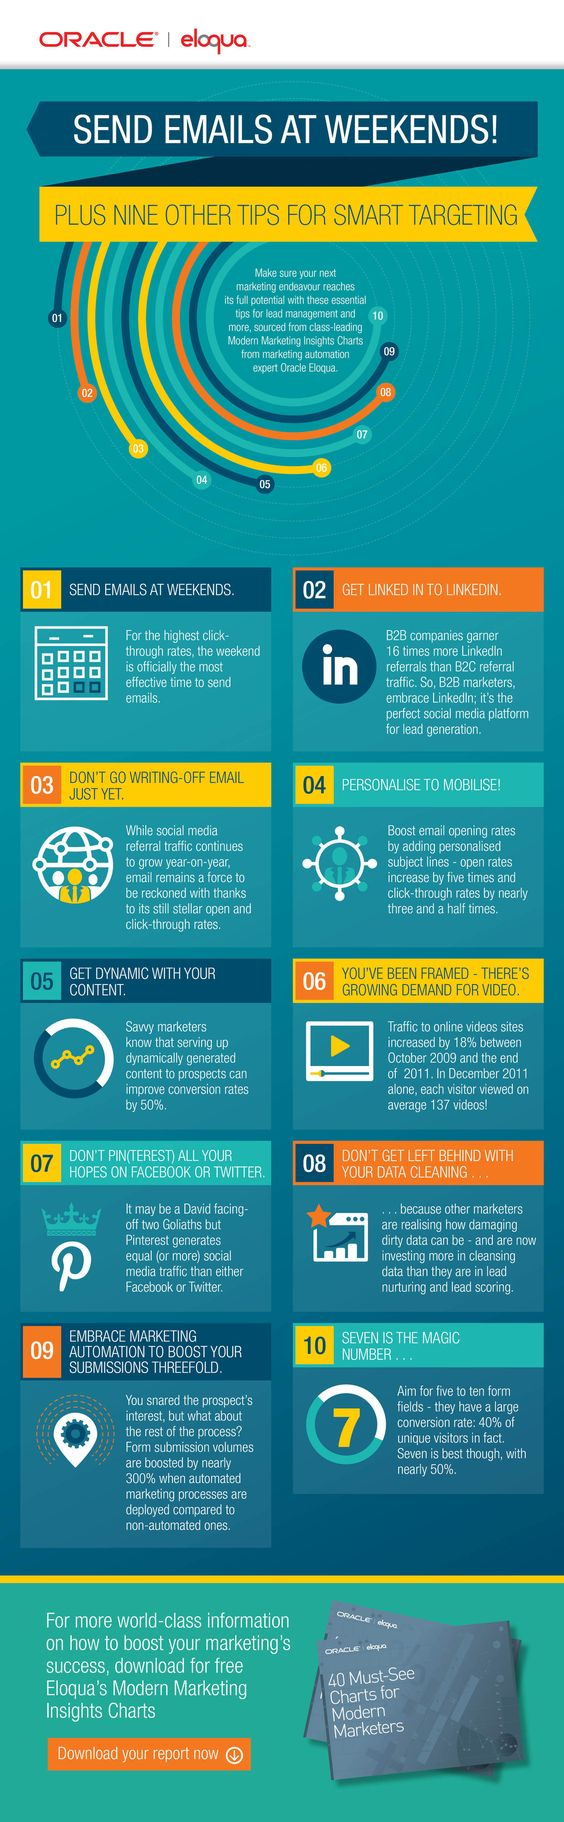 In our experience, info graphics are among the most shared content types, making them an extremely valuable part of social media marketing. http://socialmediamarketingbooks.com/top-5-social-media-tips-for-business/